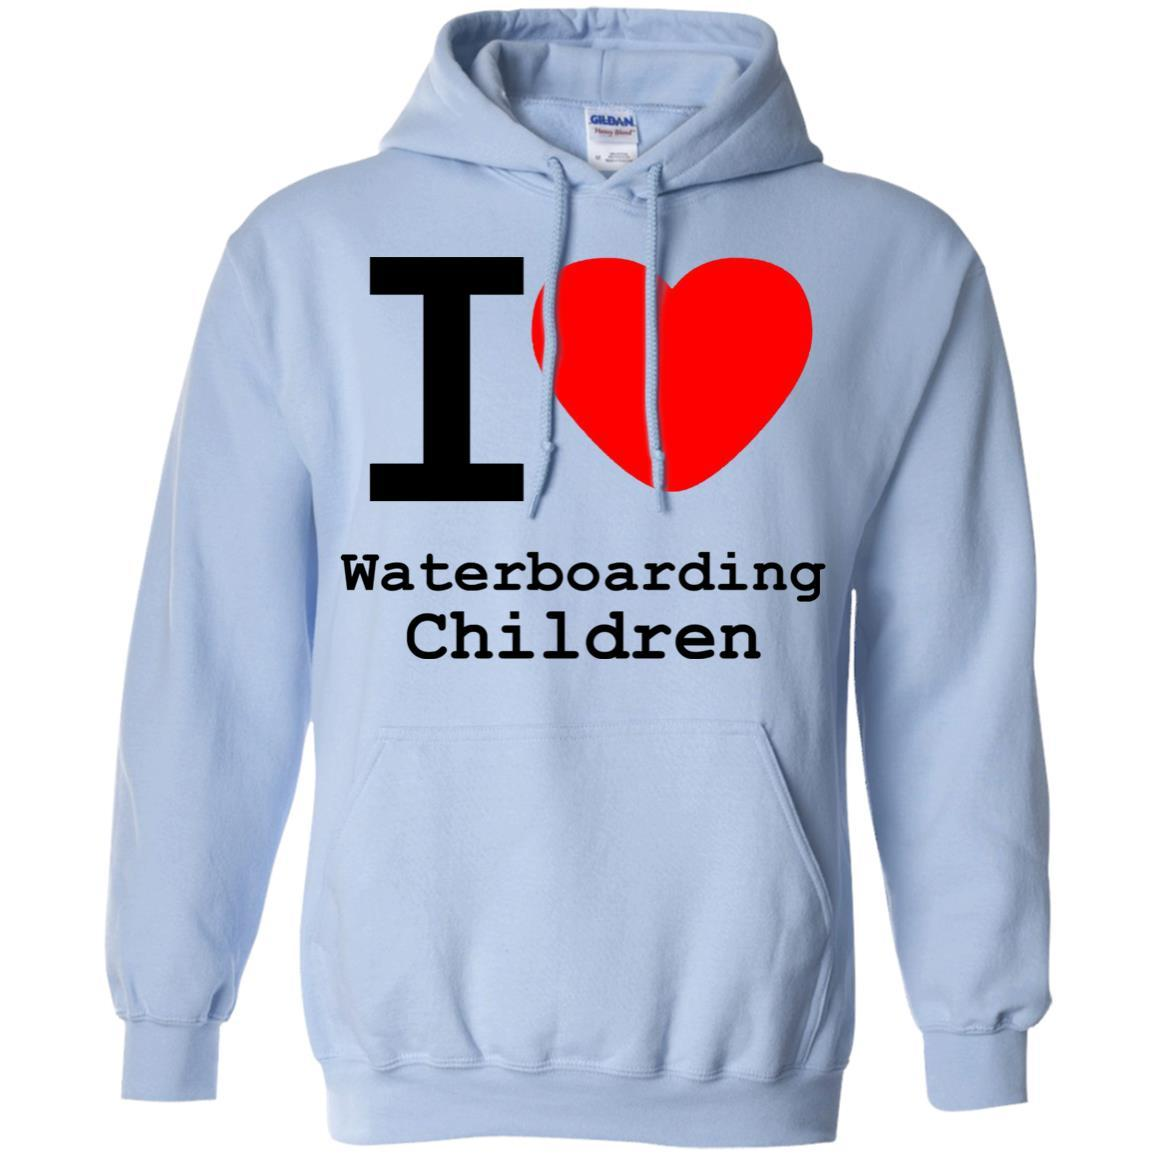 I love Waterboarding Children - Pullover Hoodie Light Blue / 5XL